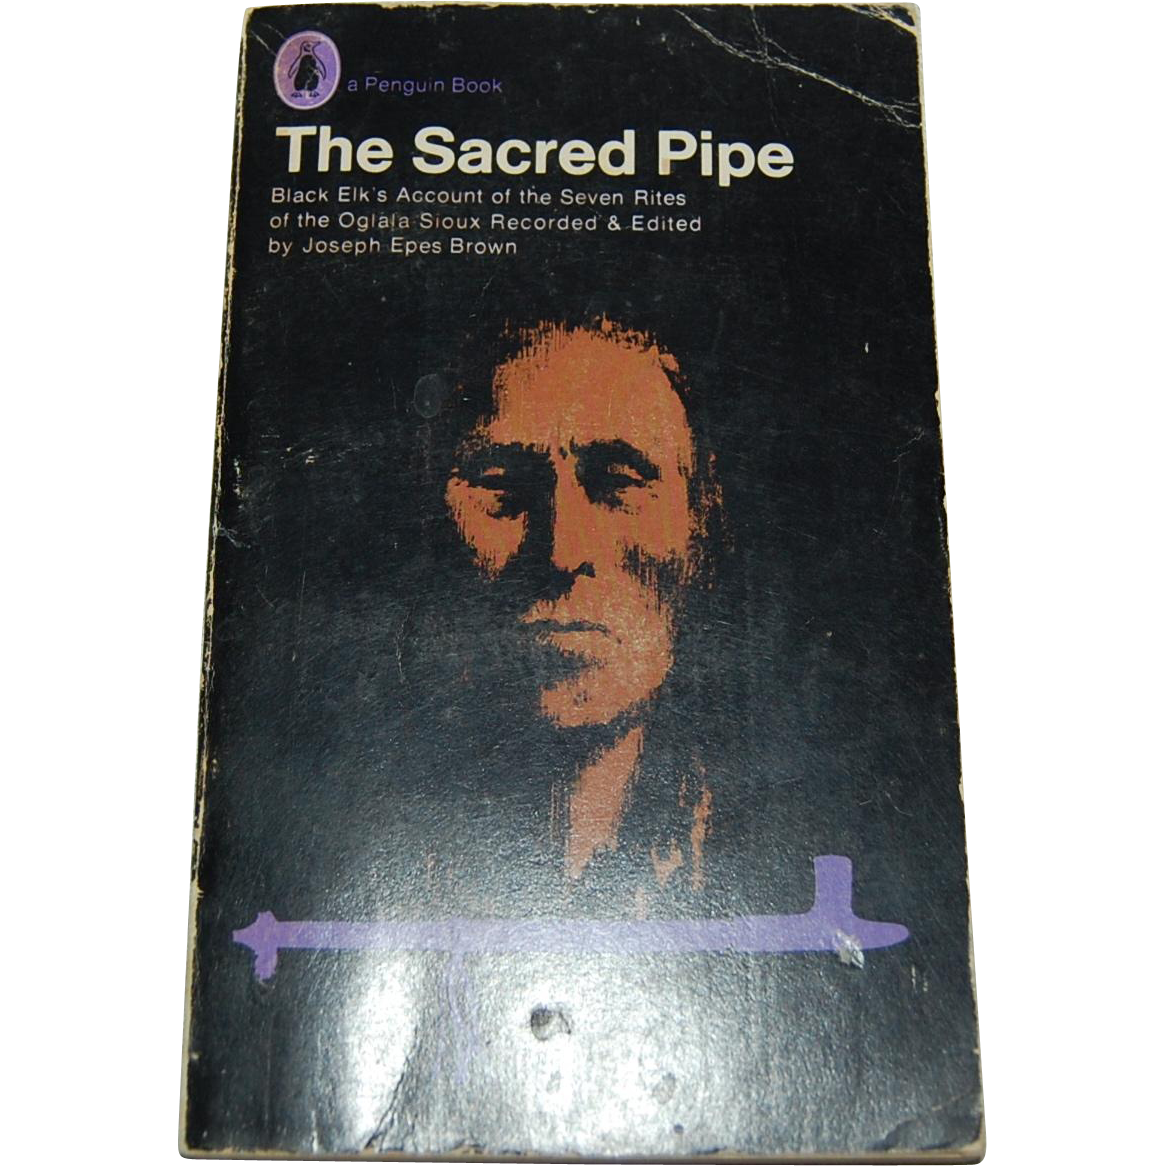 an analysis of the sacred pipe by joseph epes brown You have free access to this content american anthropologist volume 56, issue 5, article first published online: 28 oct 2009.